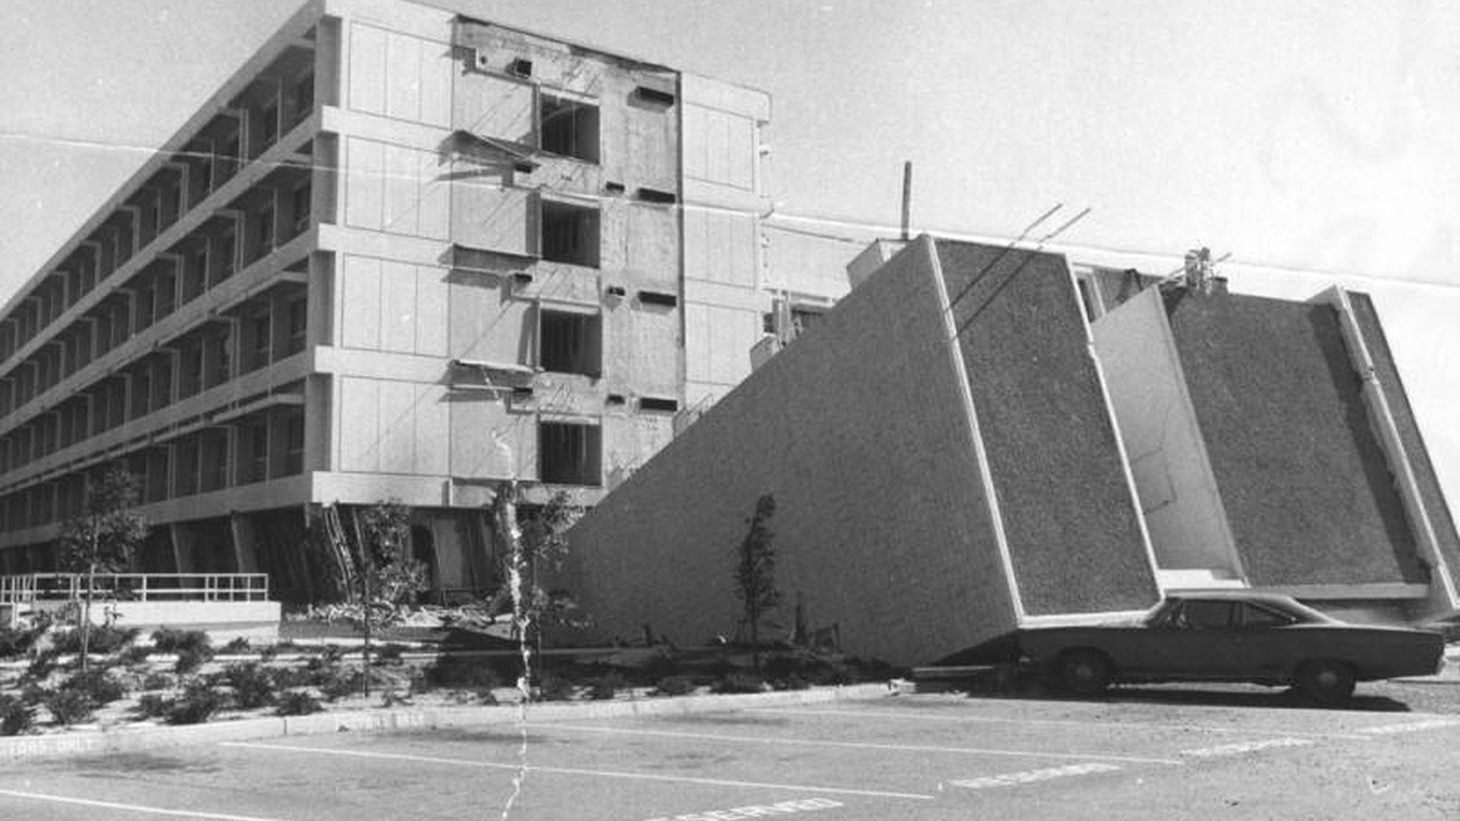 The north wing of Olive View Hospital was one of four wings to fall to the ground during the early morning of the Sylmar earthquake. It crushed the right front side of a car parked in the lot. Photo taken February 9, 1971.